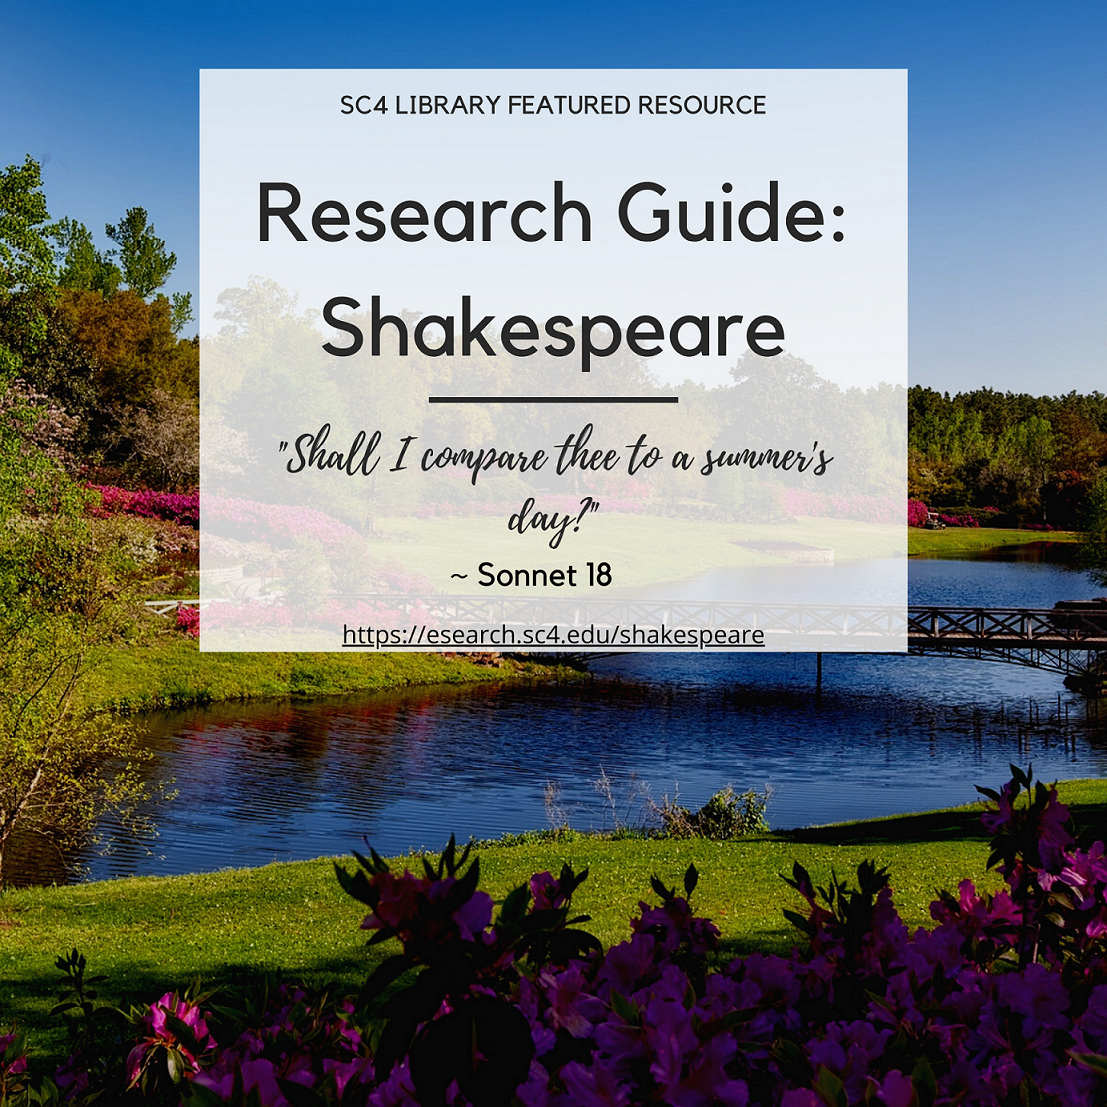 sc4 library featured resource: shakespeare research guide